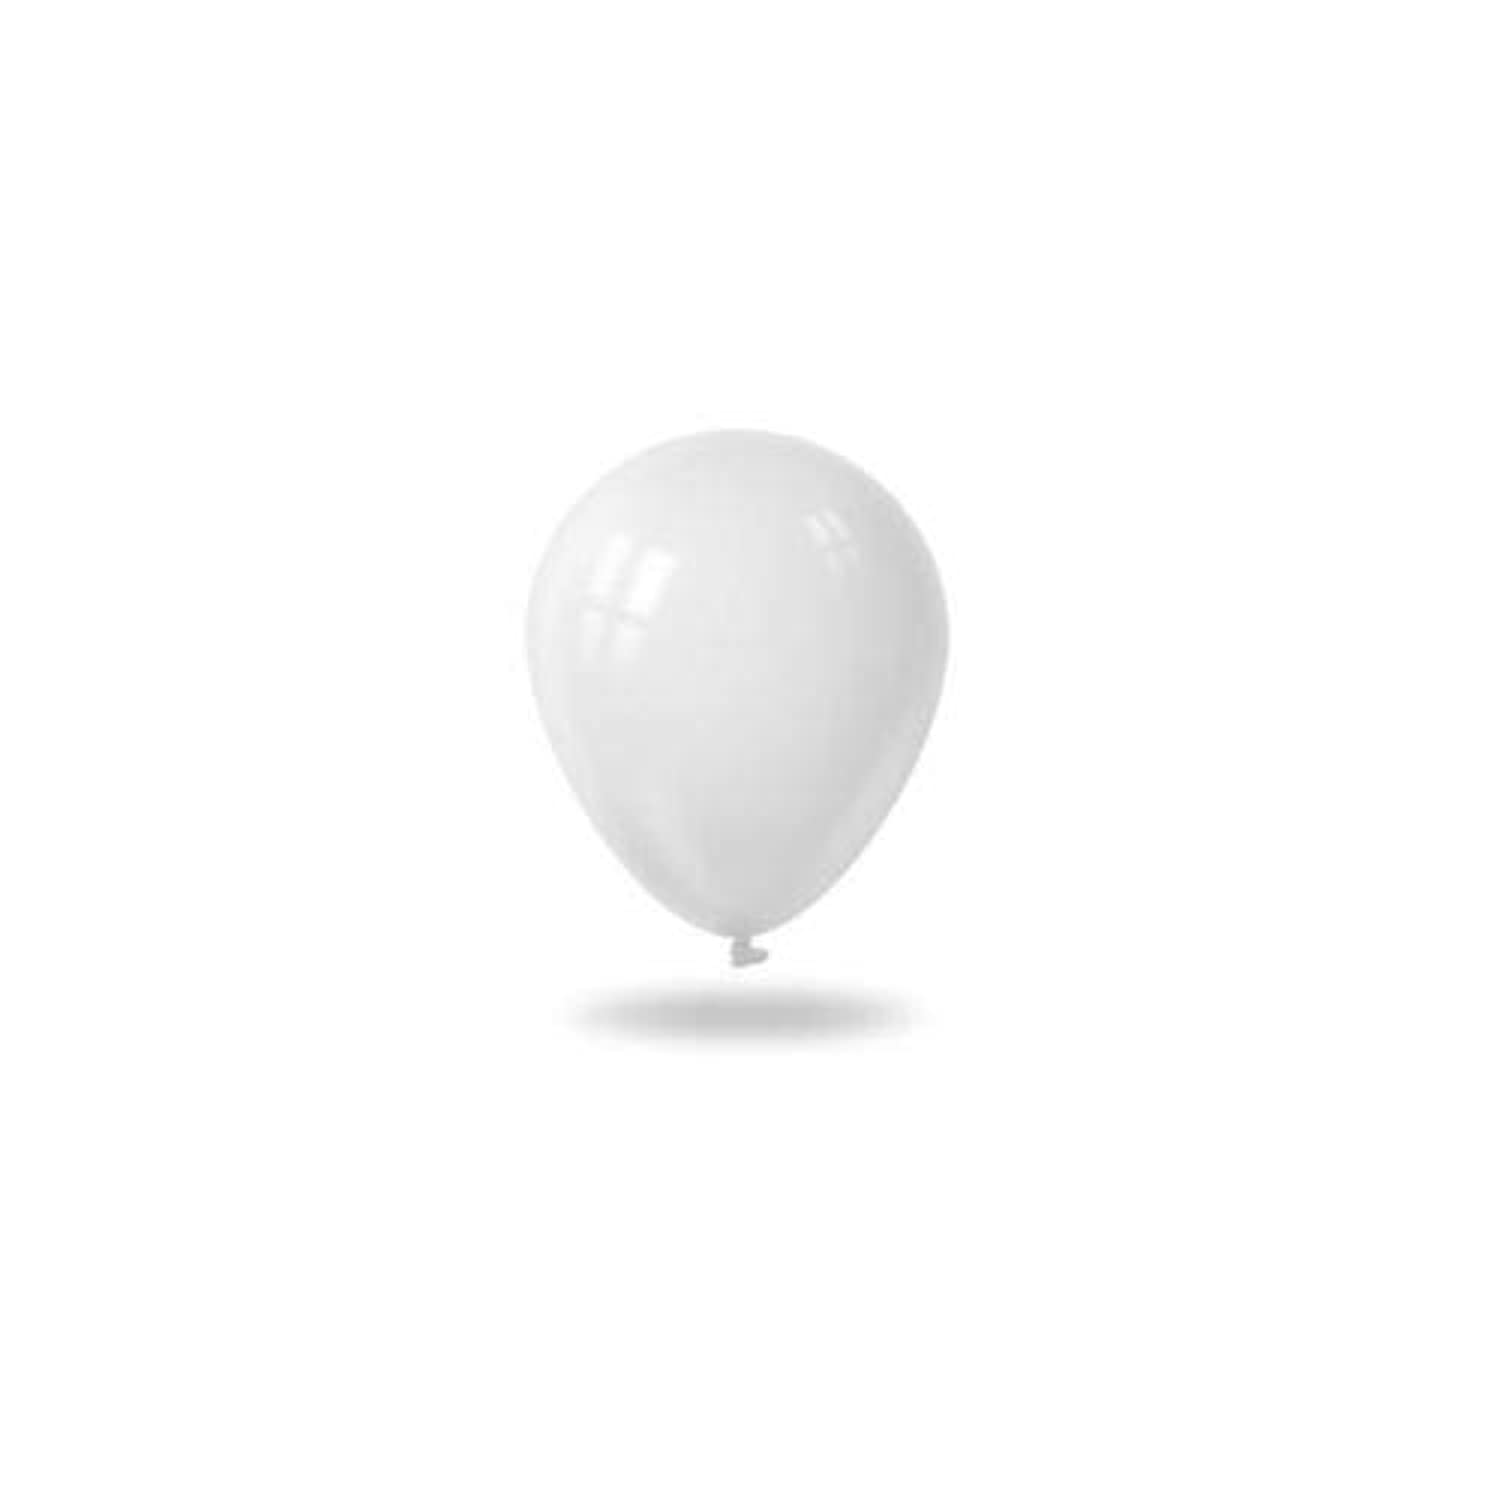 FidgetGear New 100Pcs Latex Balloons Wedding Supplies Party Decoration Birthday White